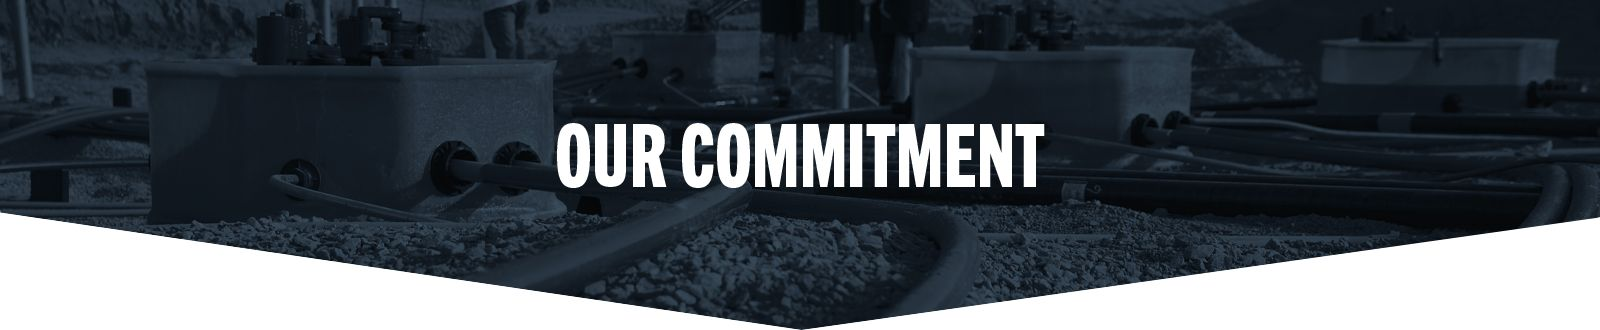 Our-Commitment-Banner.psd